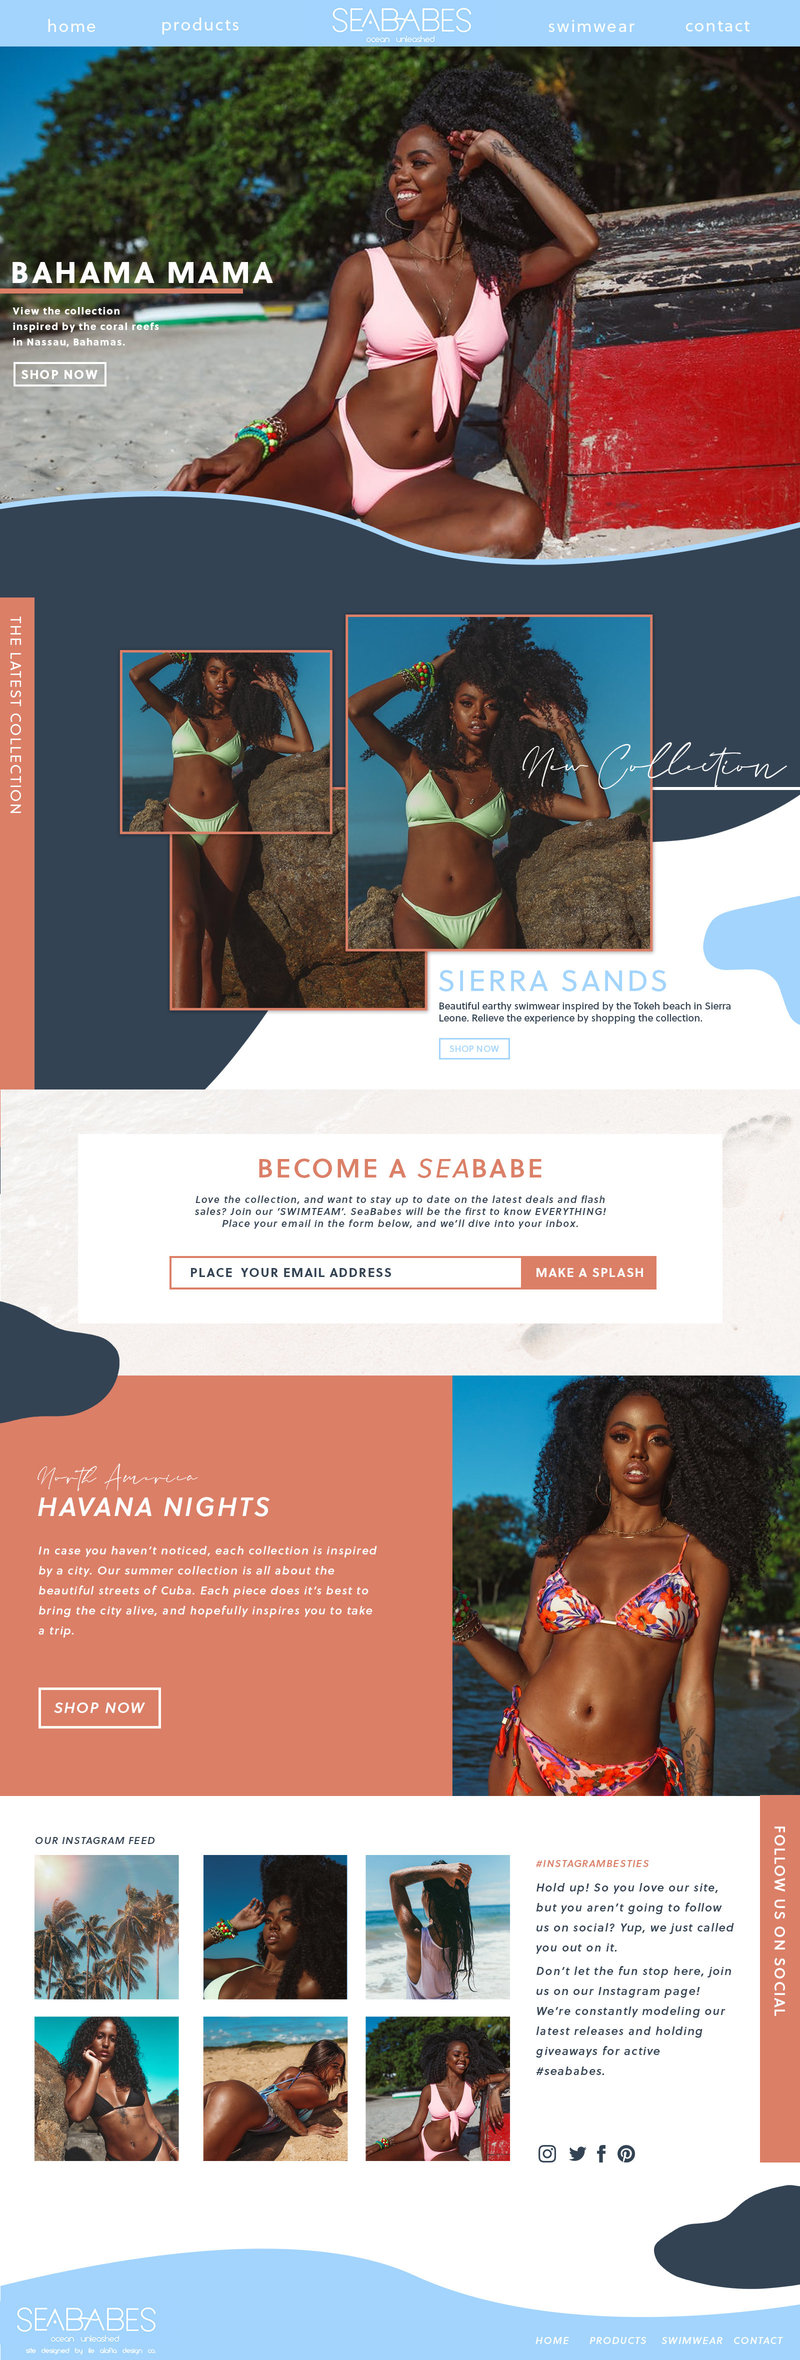 Website mockup done for SeaBabes. Web design created by Ile Alafia Design Co.